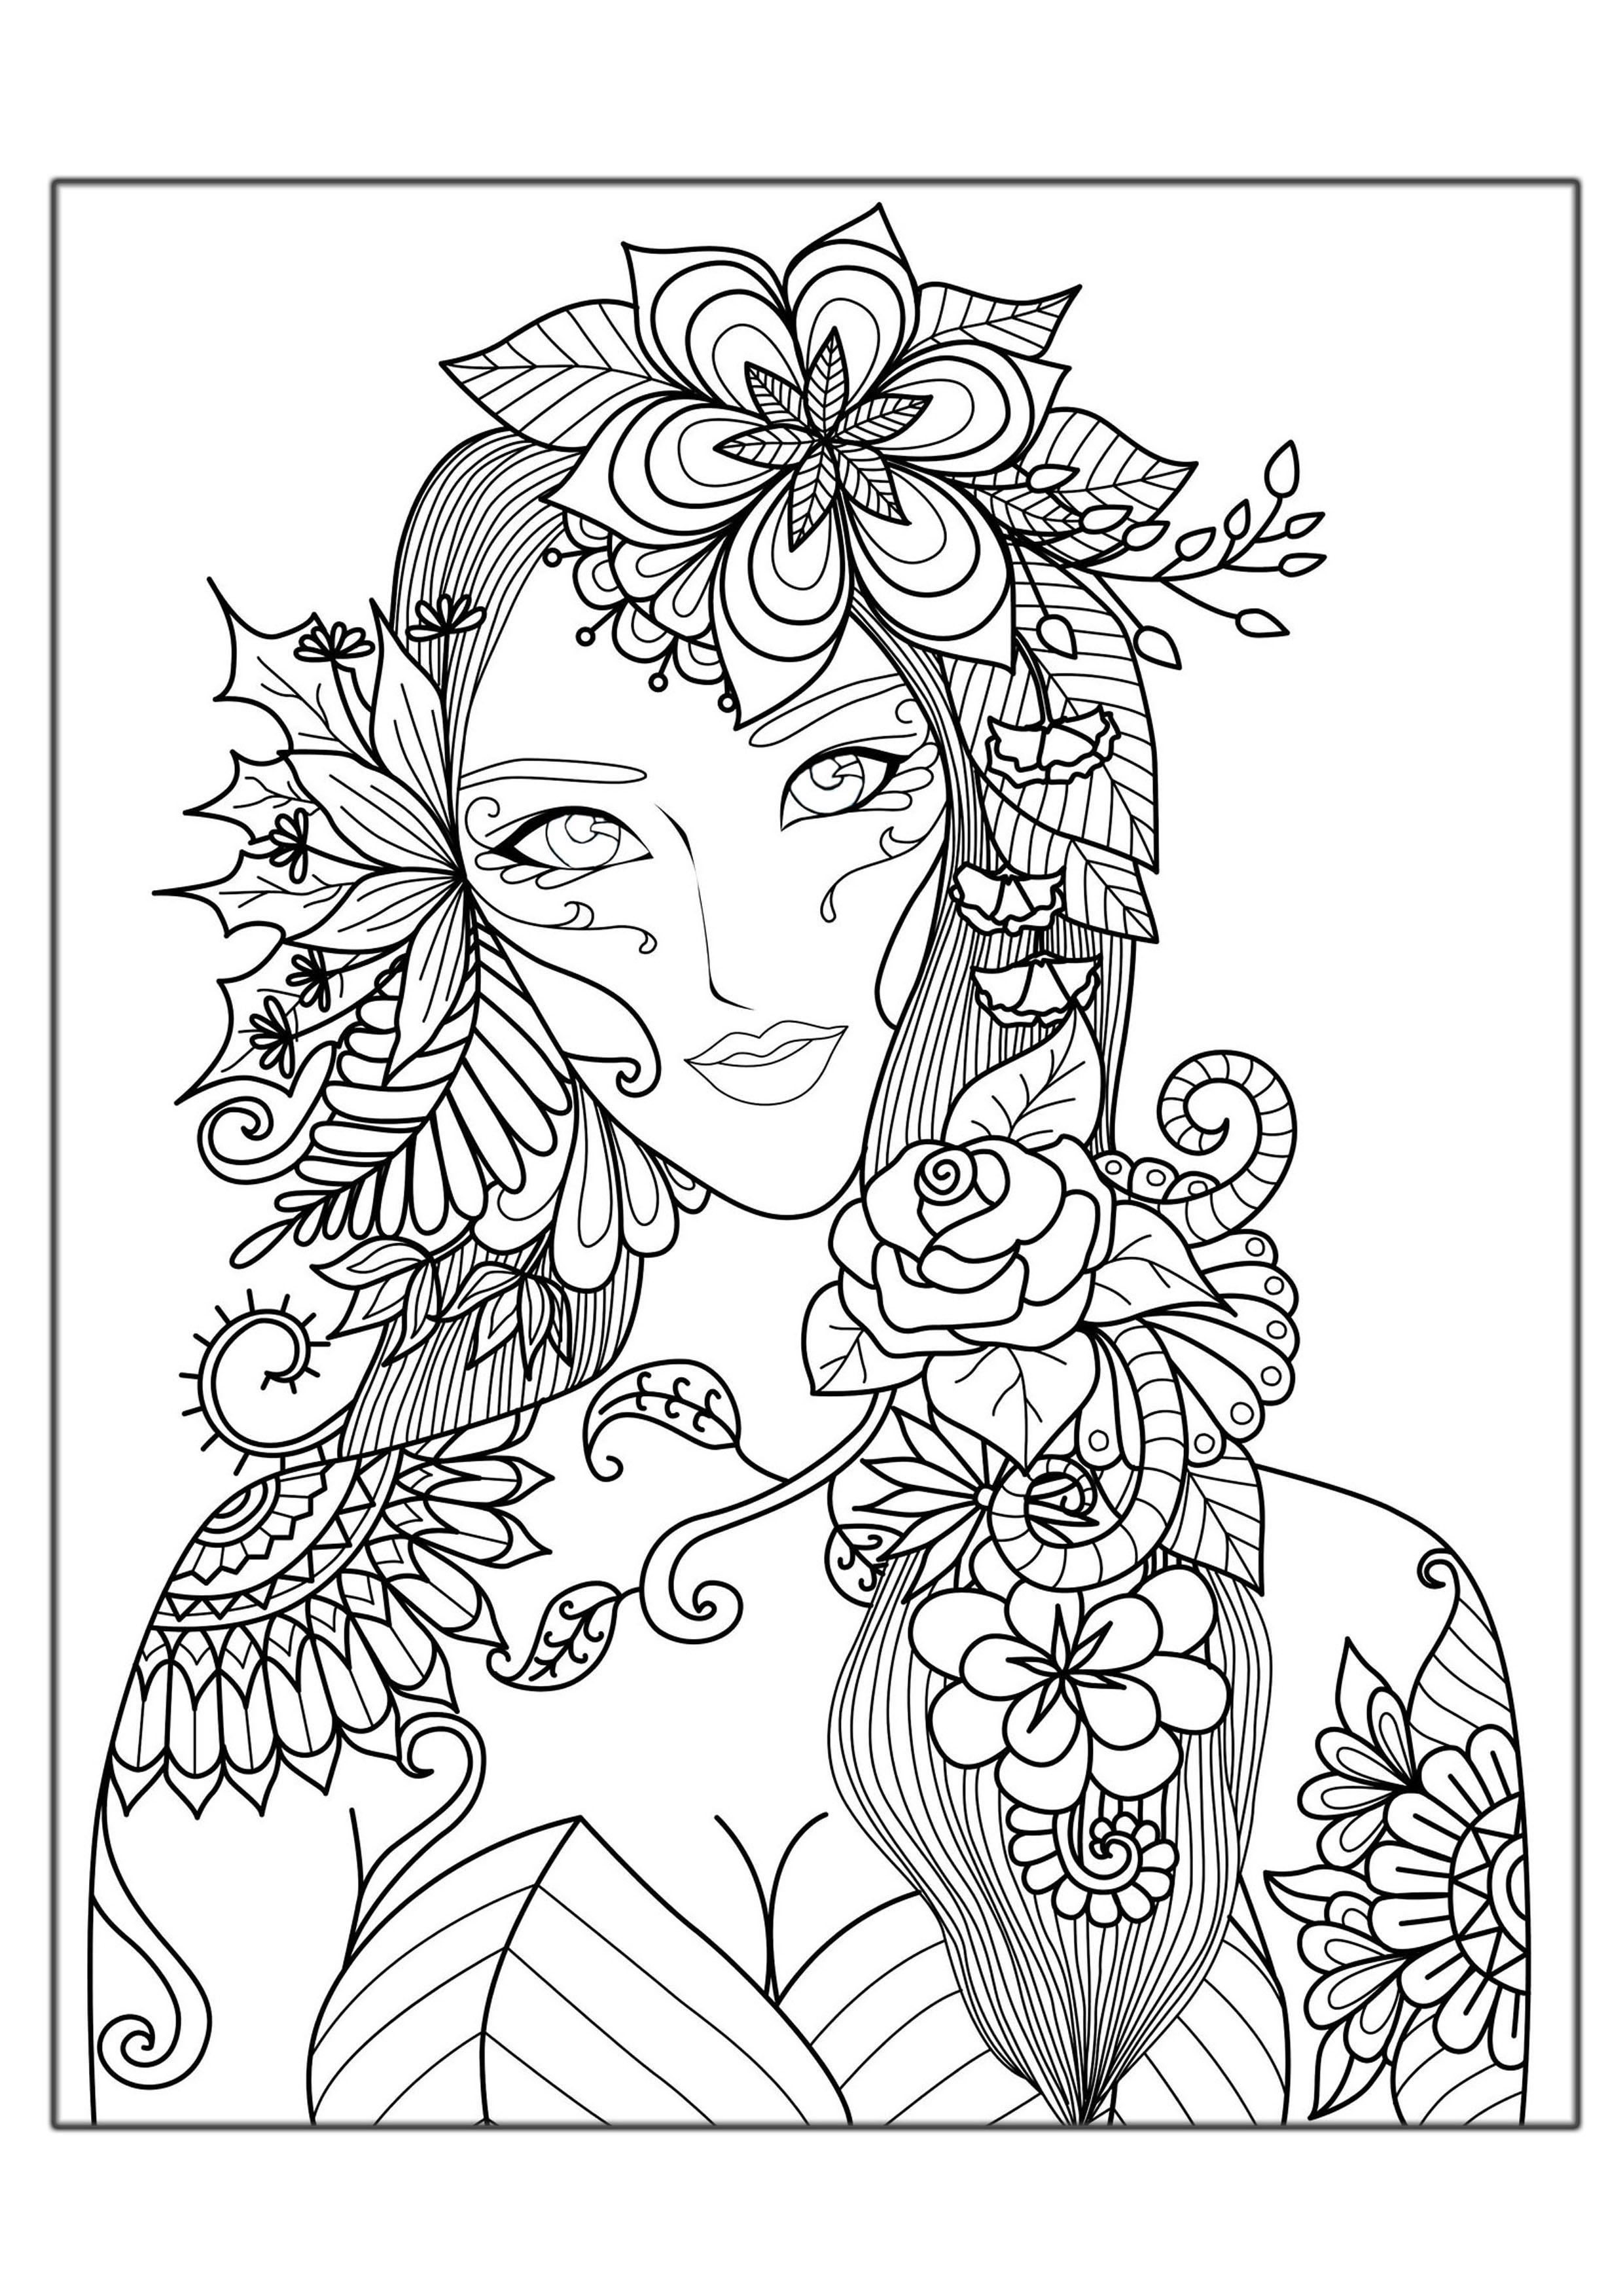 coloring pages hard hard coloring pages for adults best coloring pages for kids hard pages coloring